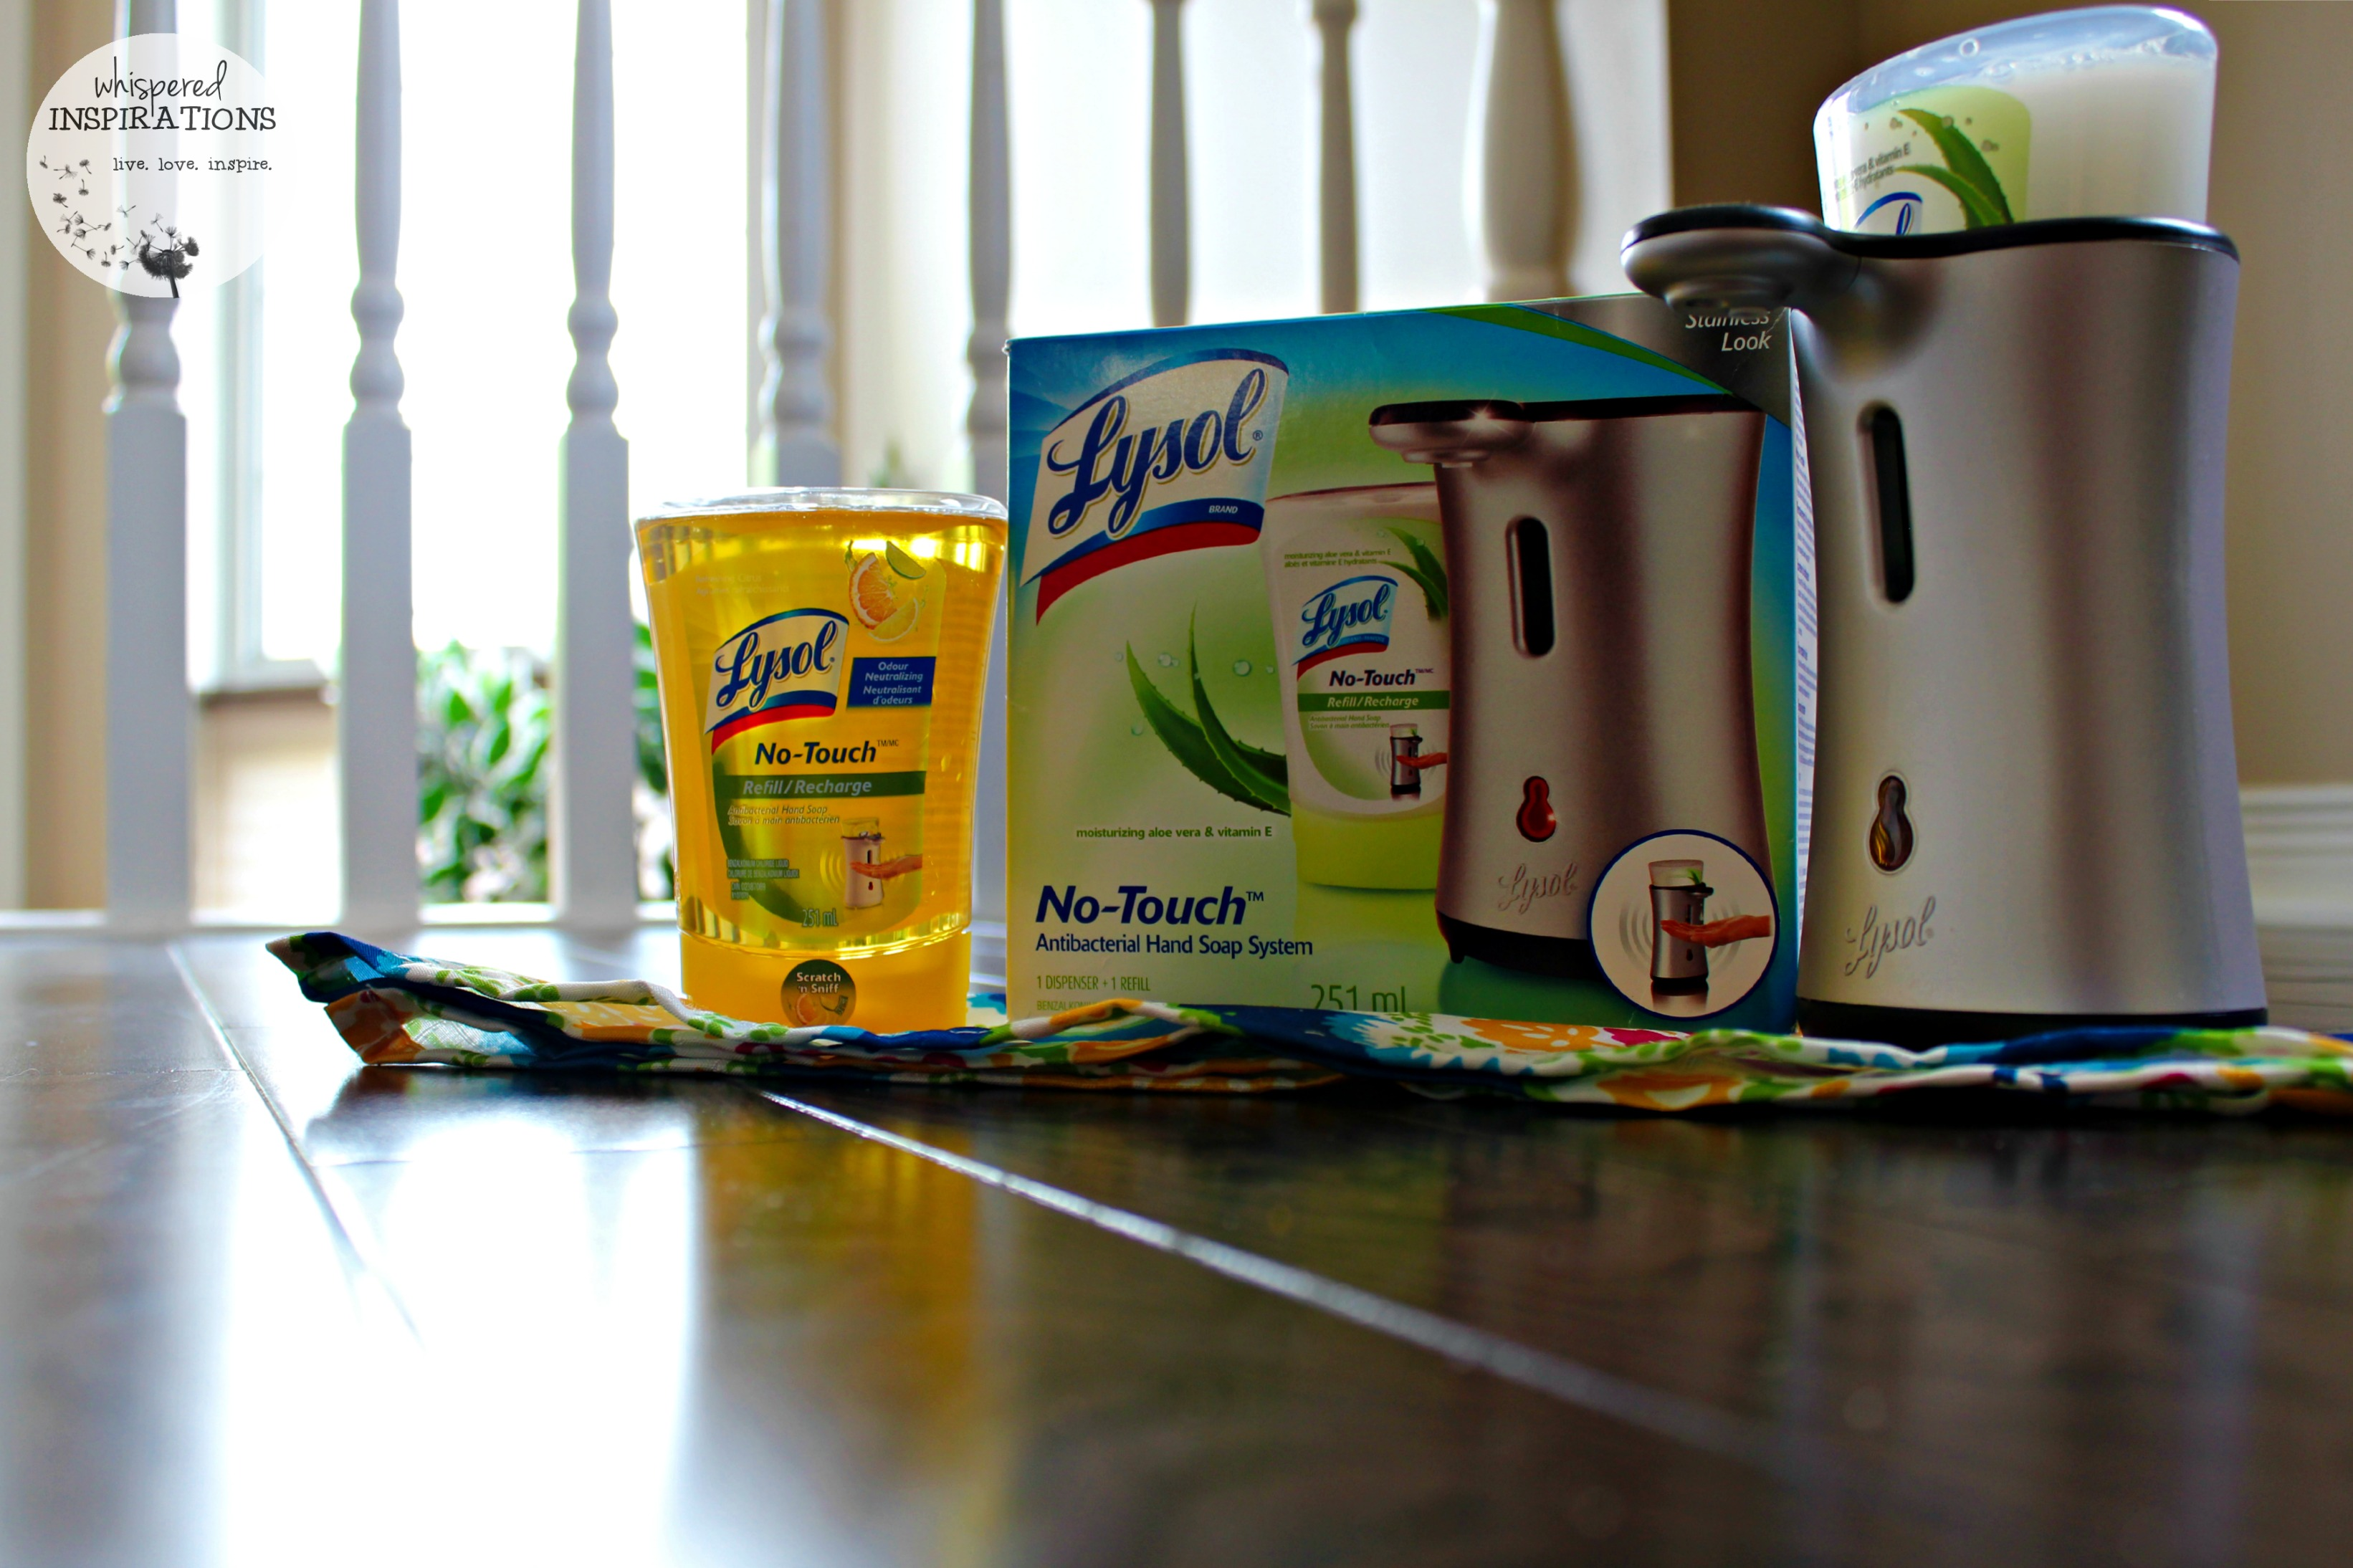 Lysol® No-Touch Antibacterial Hand Soap System: Making it Simple to Wash Away Germs All While Moisturizing Your Hands!